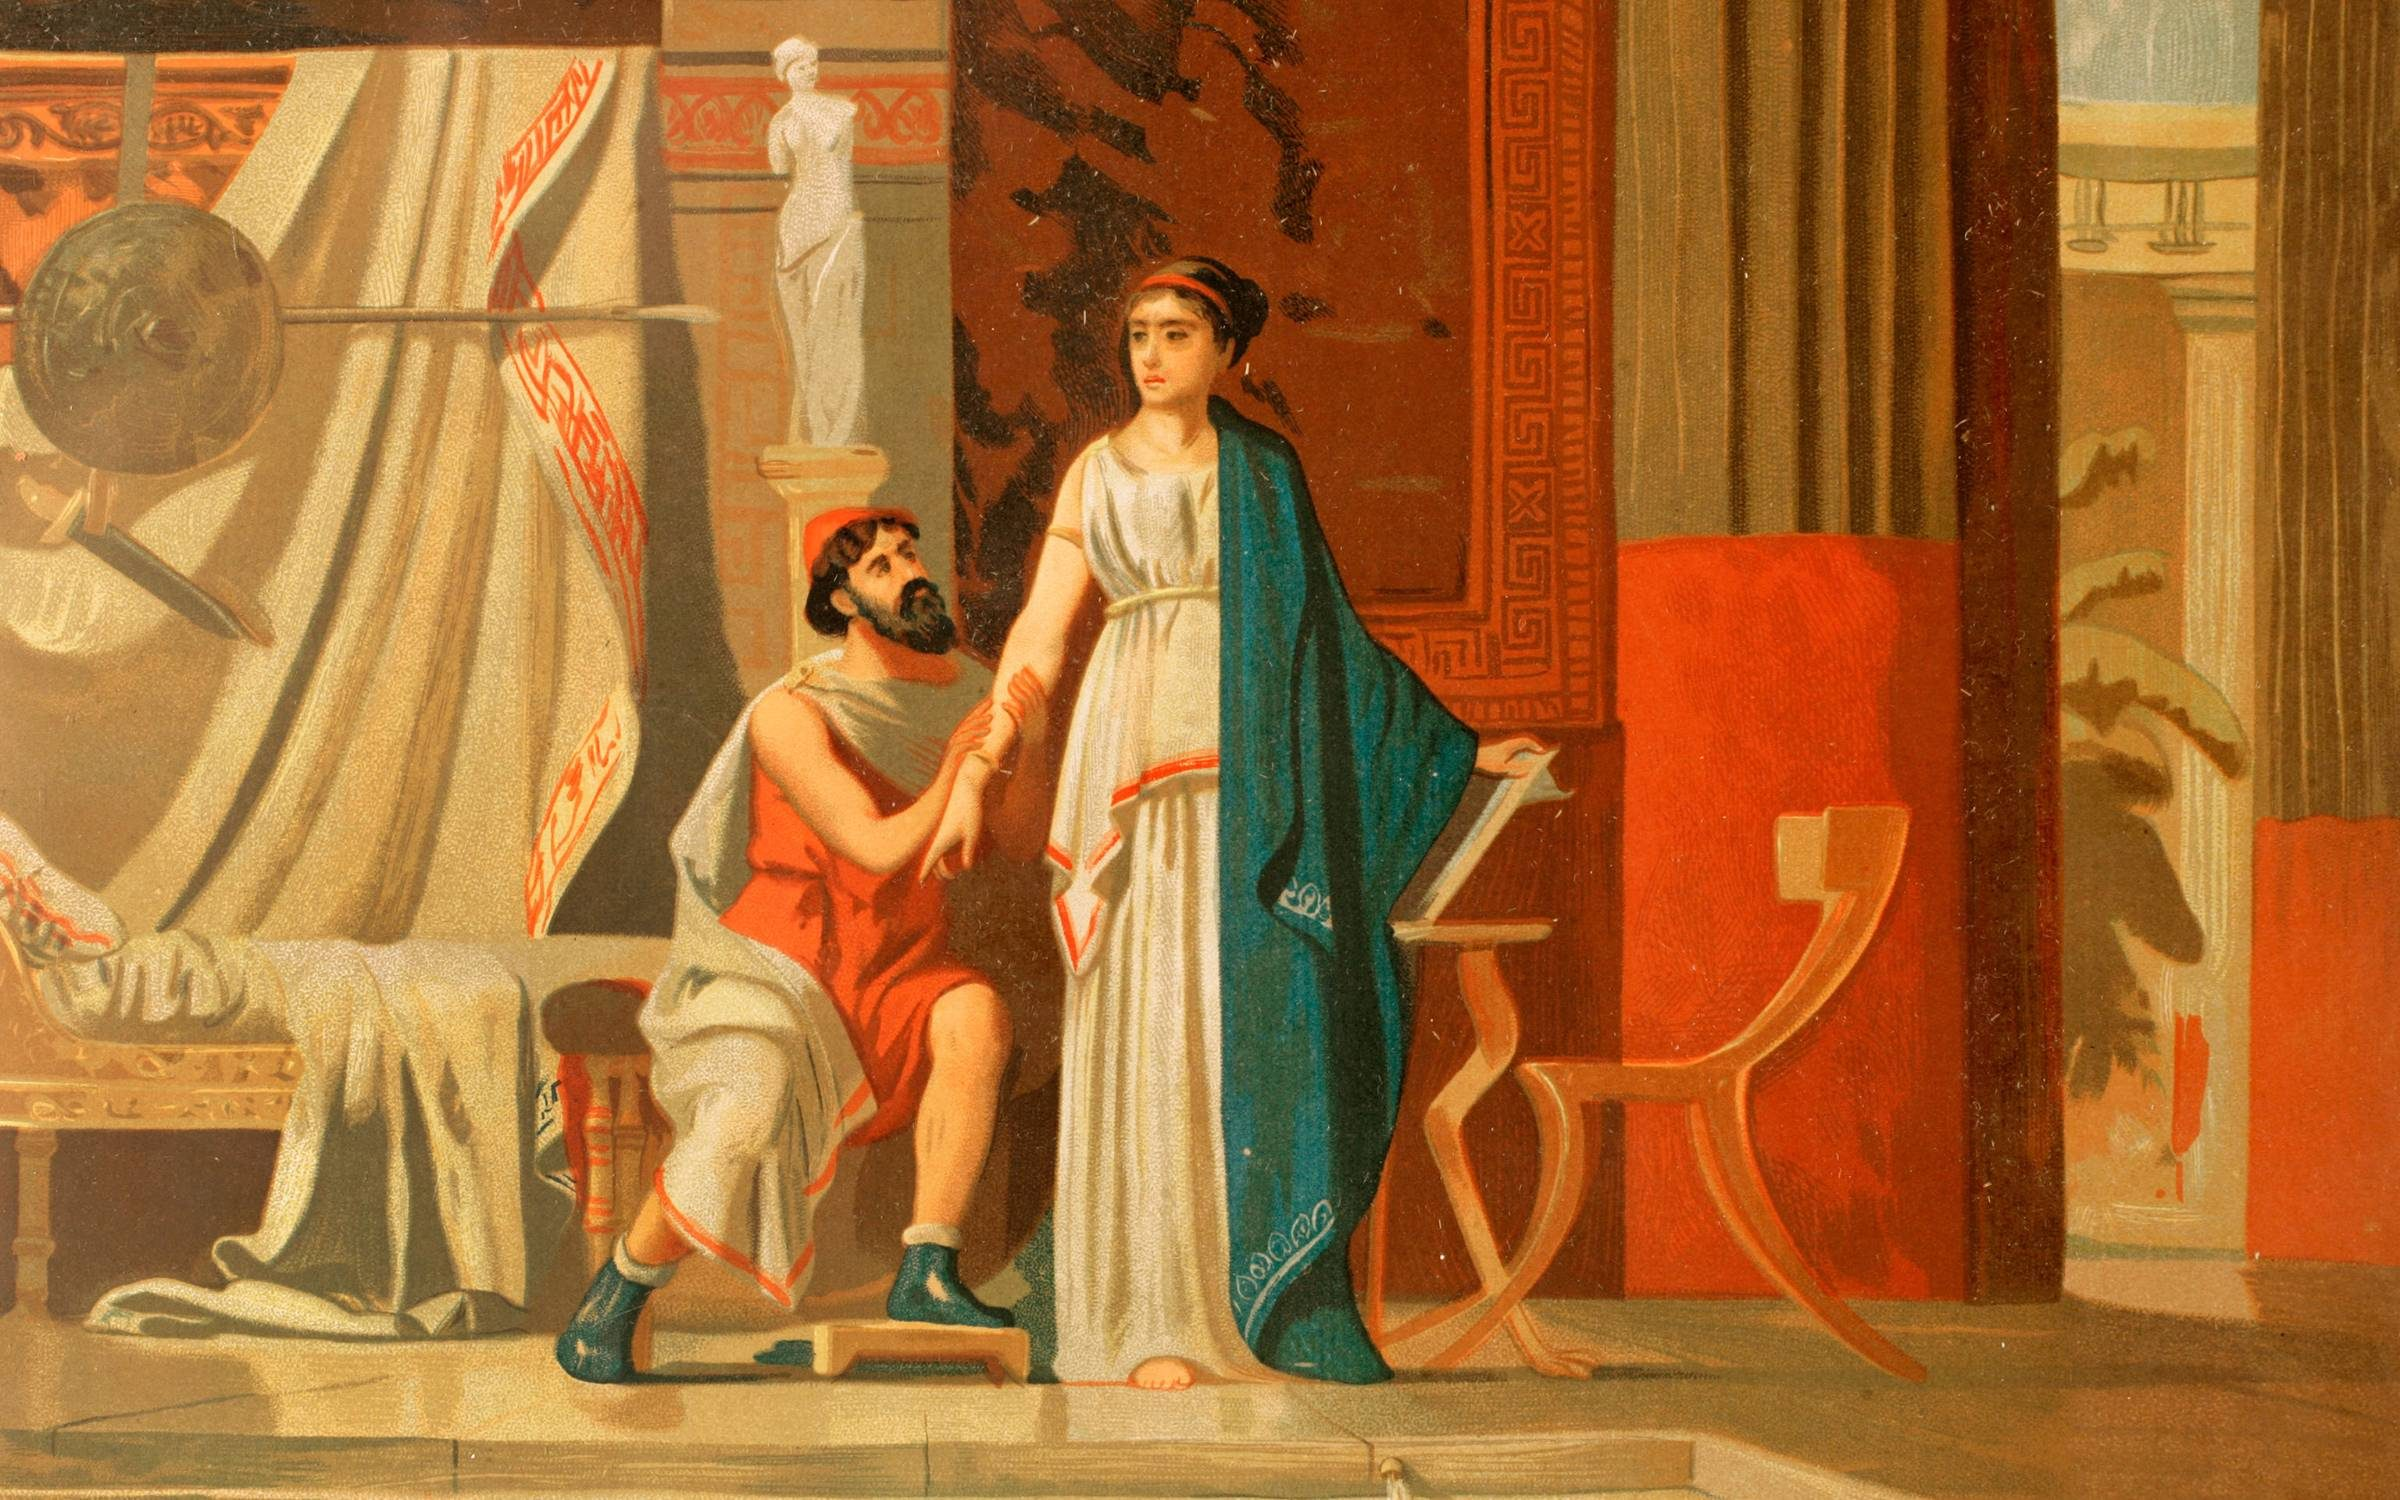 Aspasia of Miletus (c. 470-400 BC). with her lover Pericles. Chromolithograph from 1881. Credit: Universal History Archive/ Universal Images Group via Getty Images